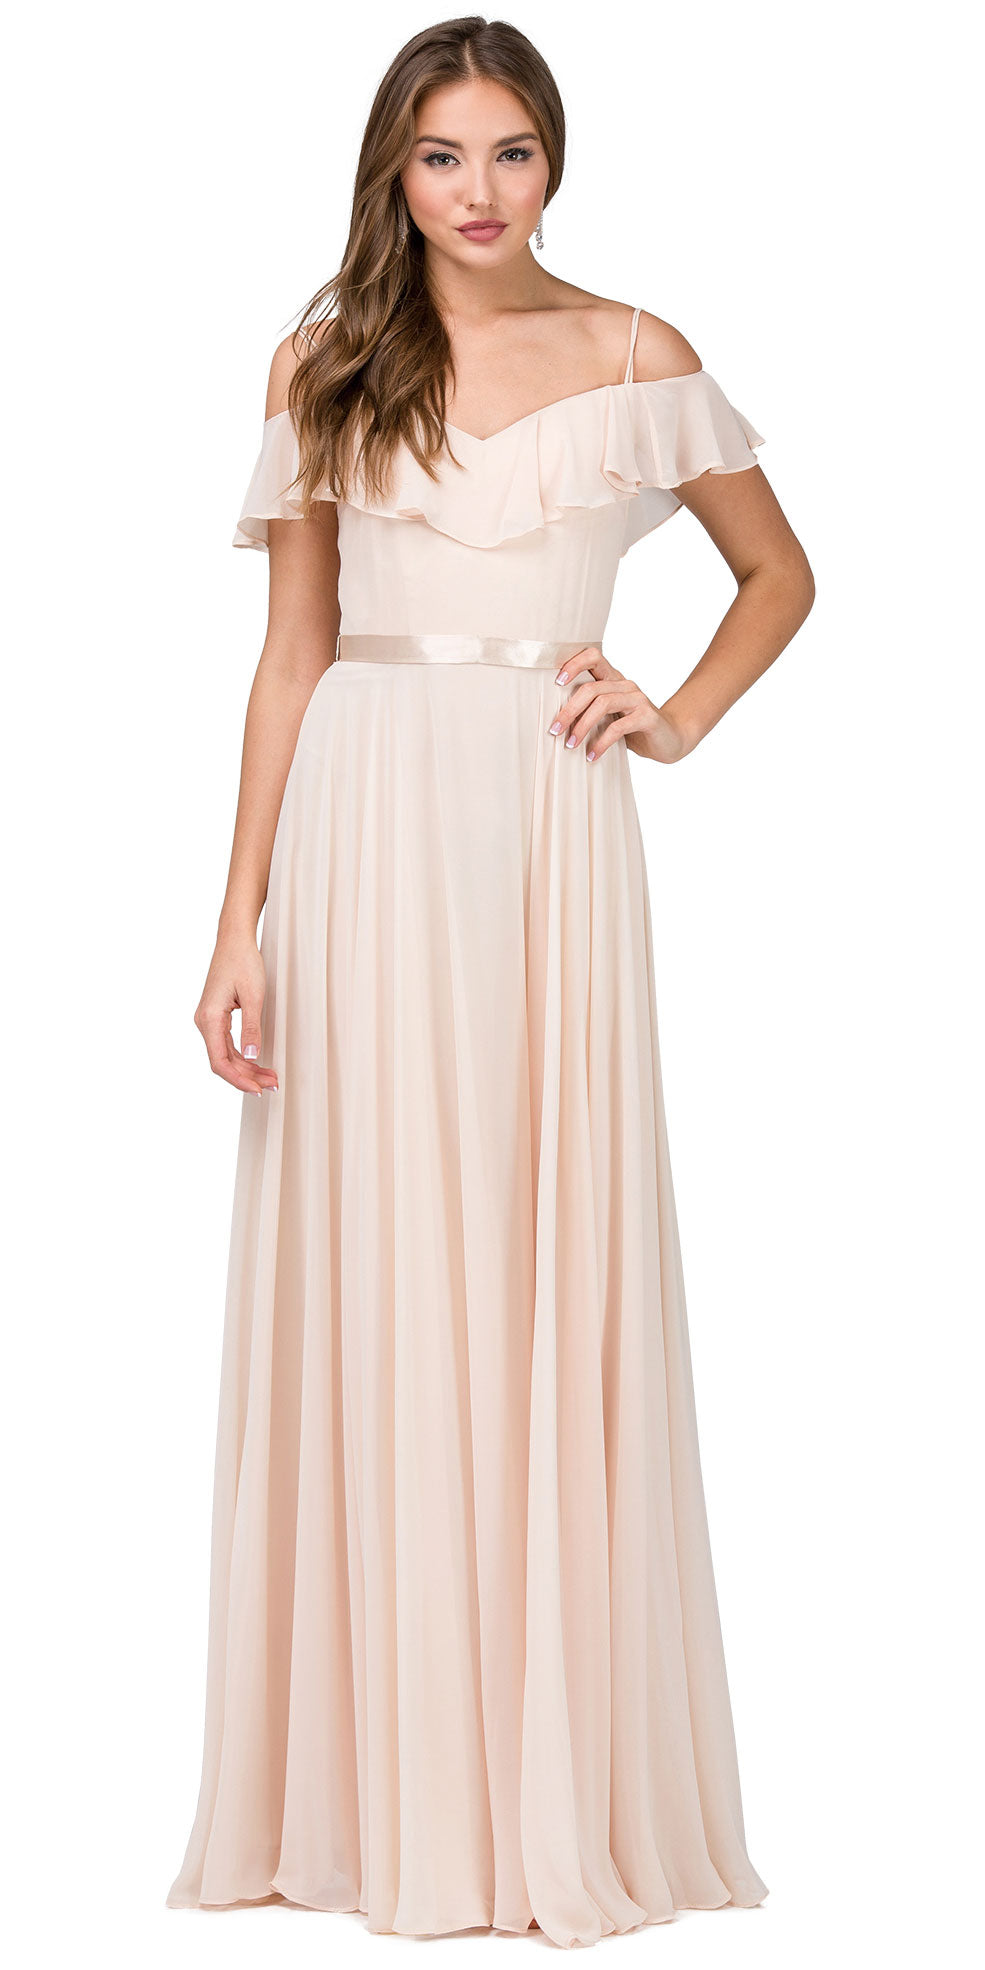 Main image of Cold Shoulder Frill Top Ribbon Waist Long Bridesmaid Dress